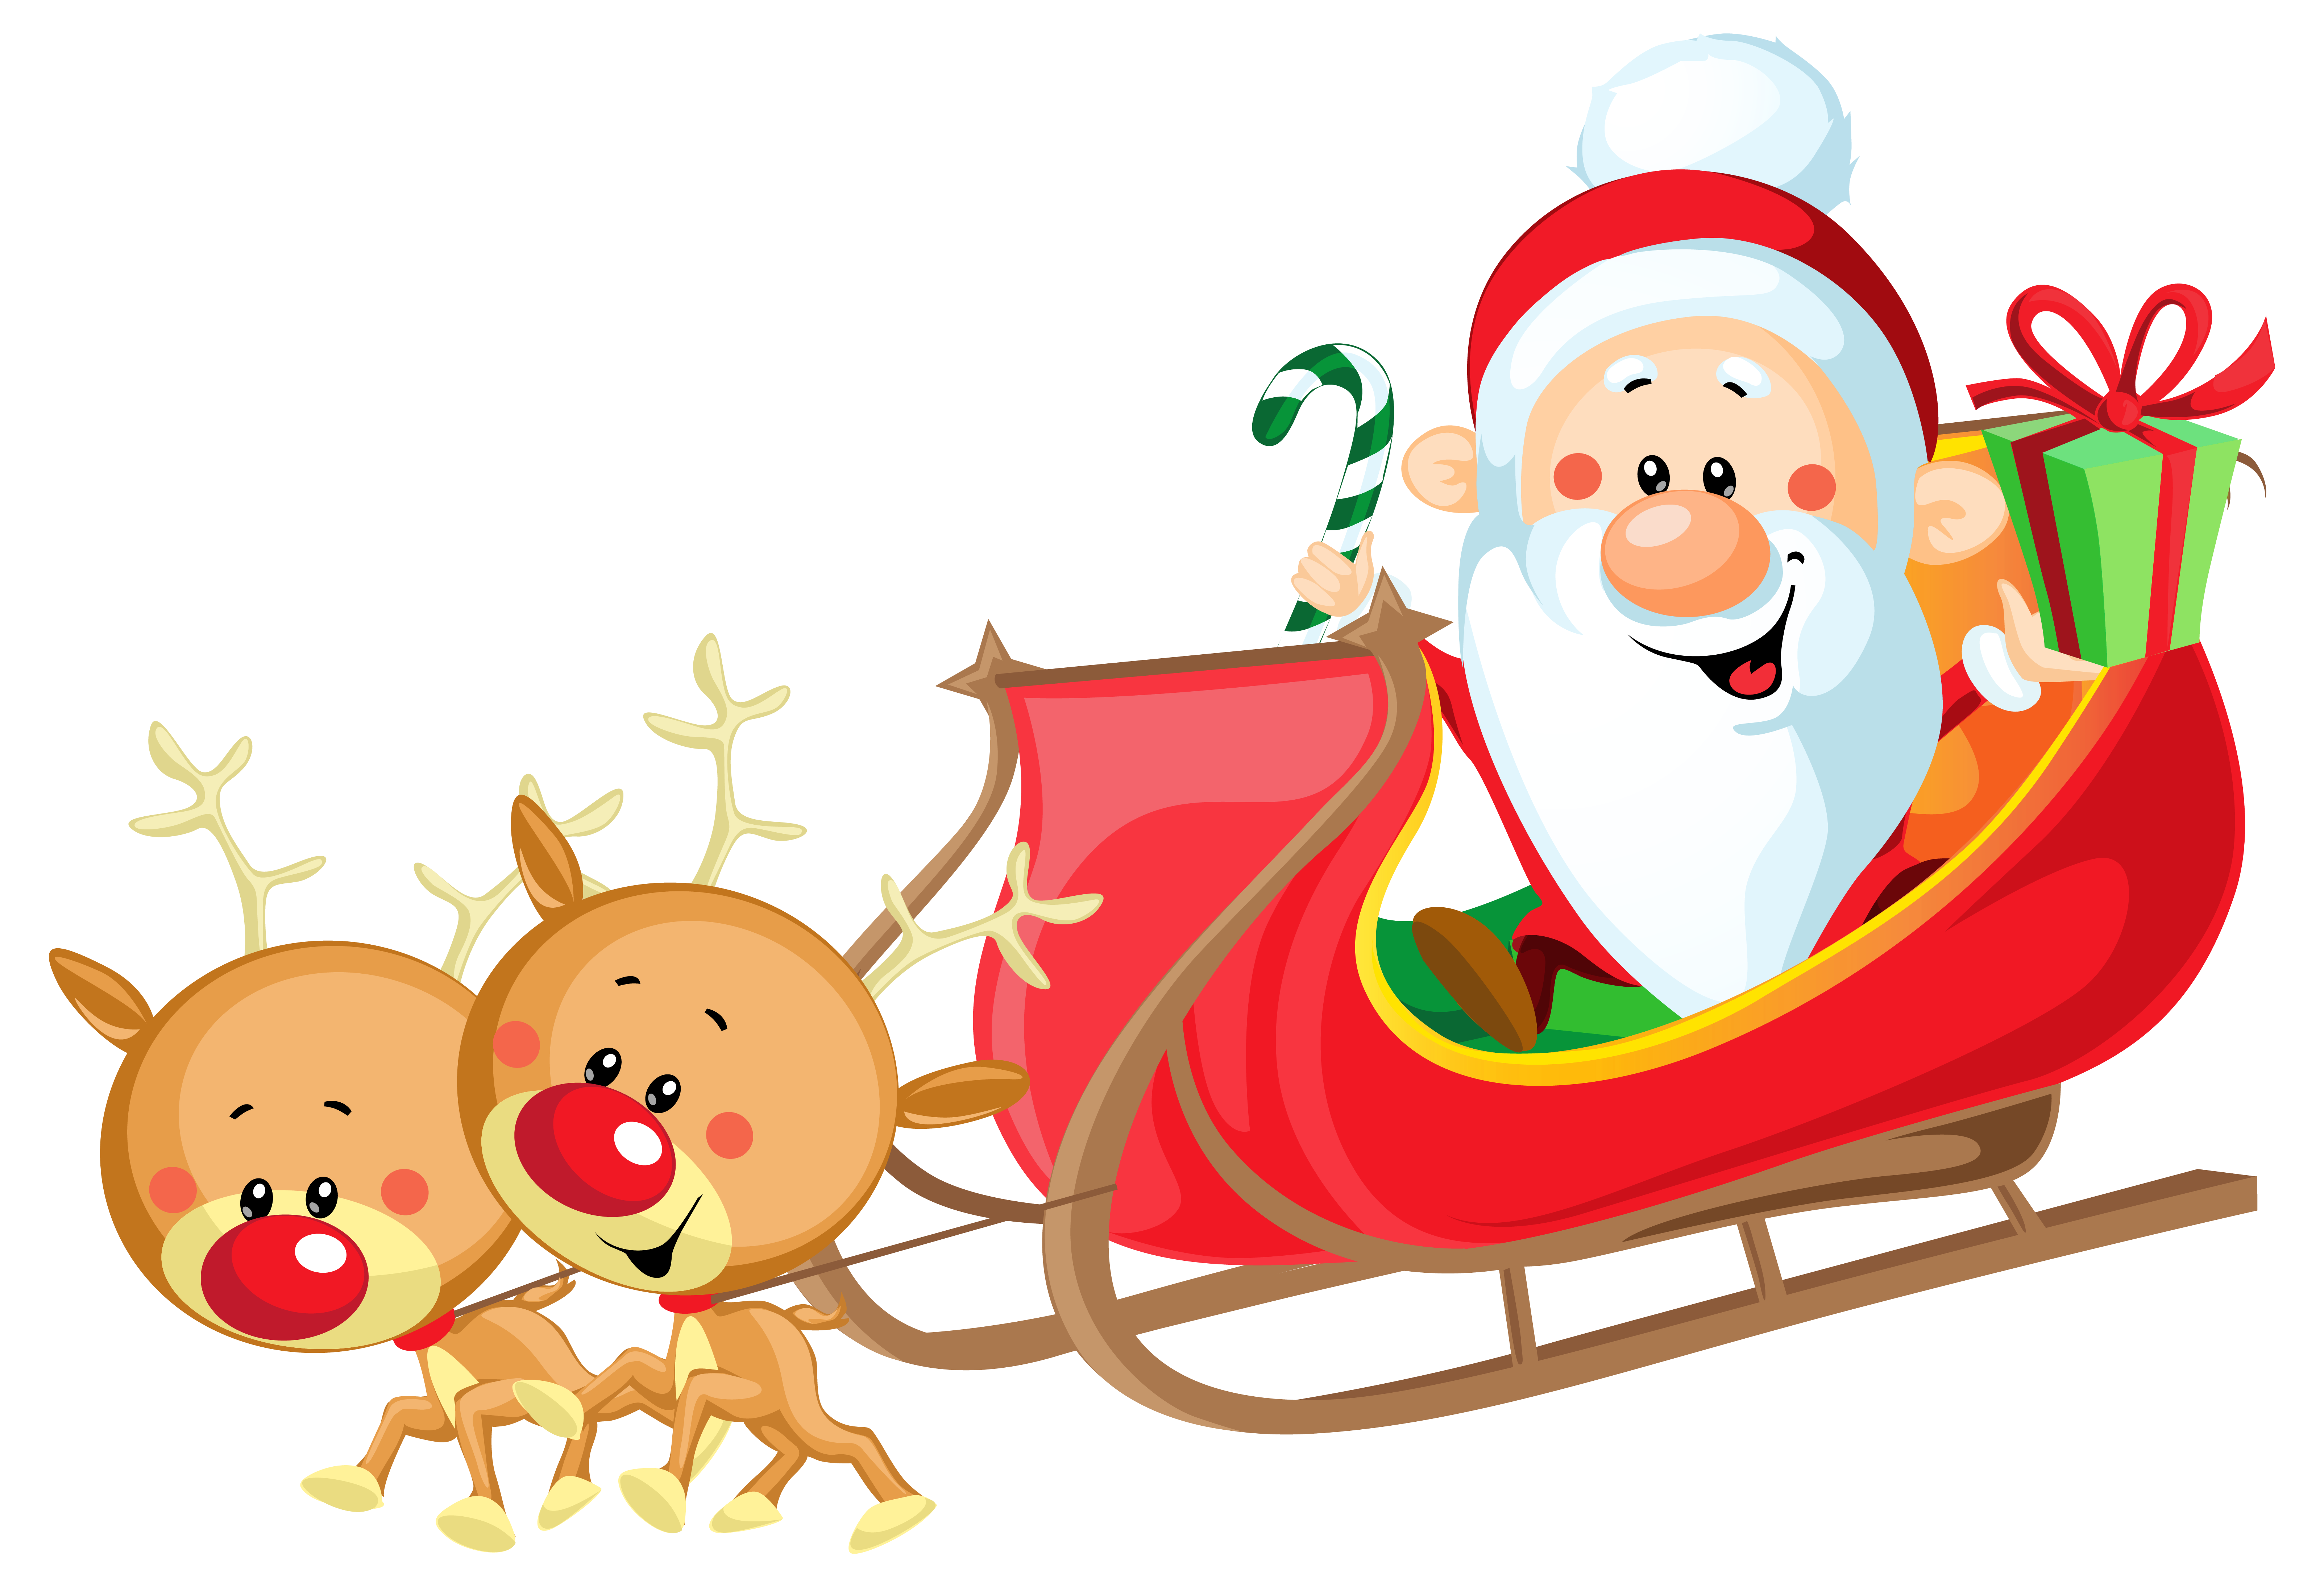 Santa Sleigh Silhouette Clip Art At Getdrawings Com Free For Rh